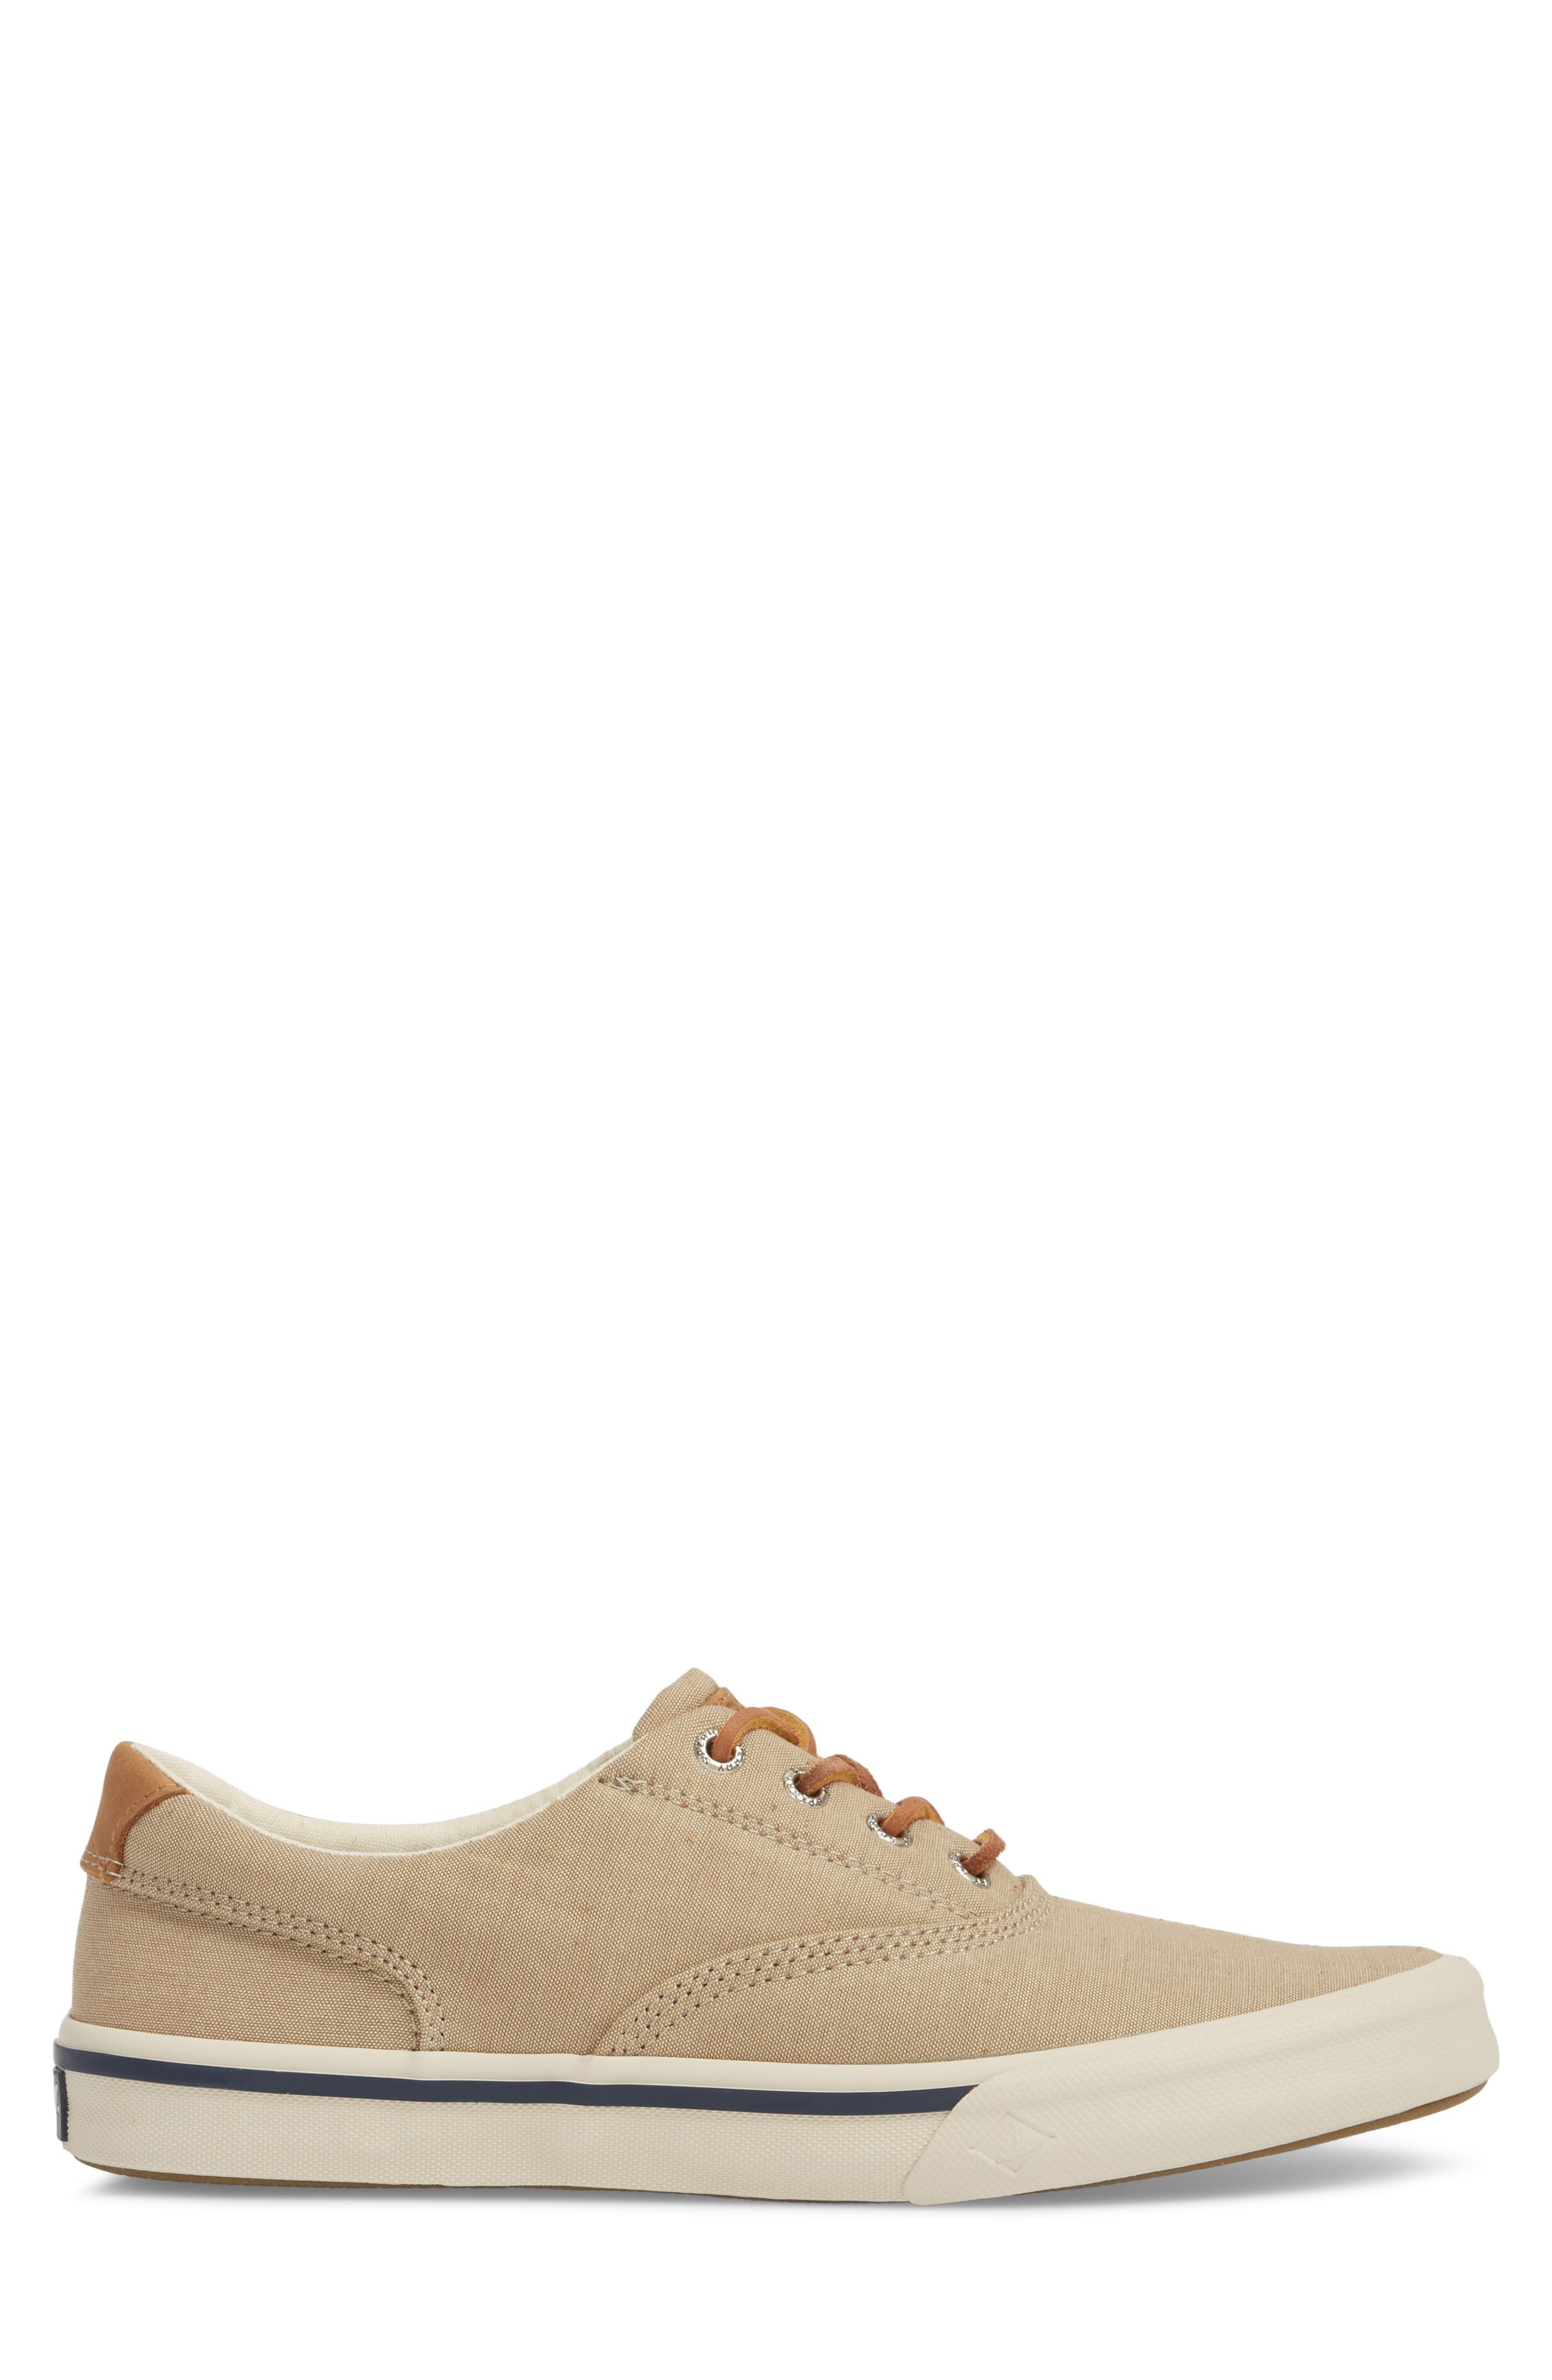 Striper 2 CVO Sneaker,                             Alternate thumbnail 3, color,                             Chino Canvas